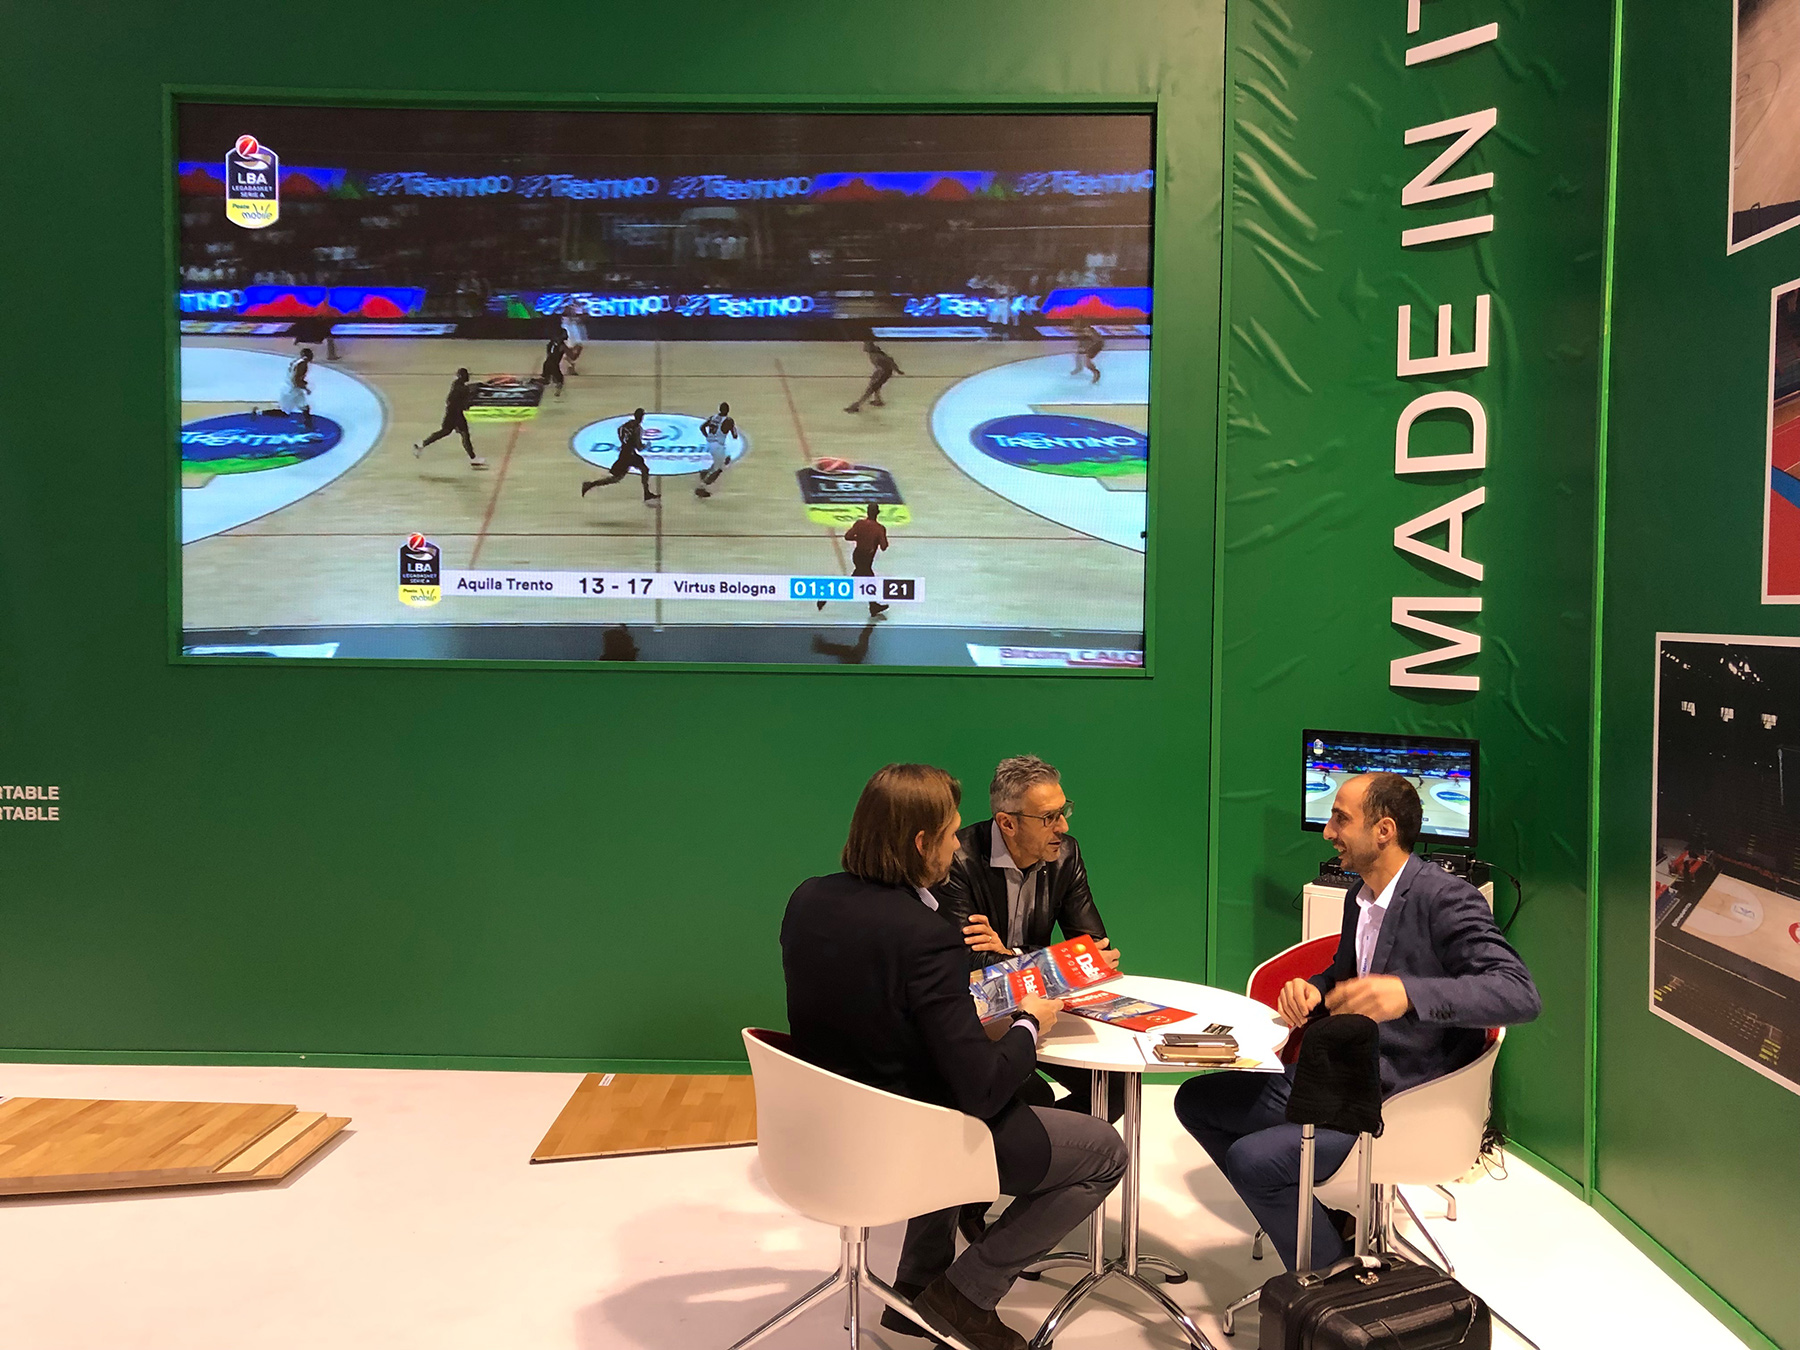 A real success for Dalla Riva Sportfloors